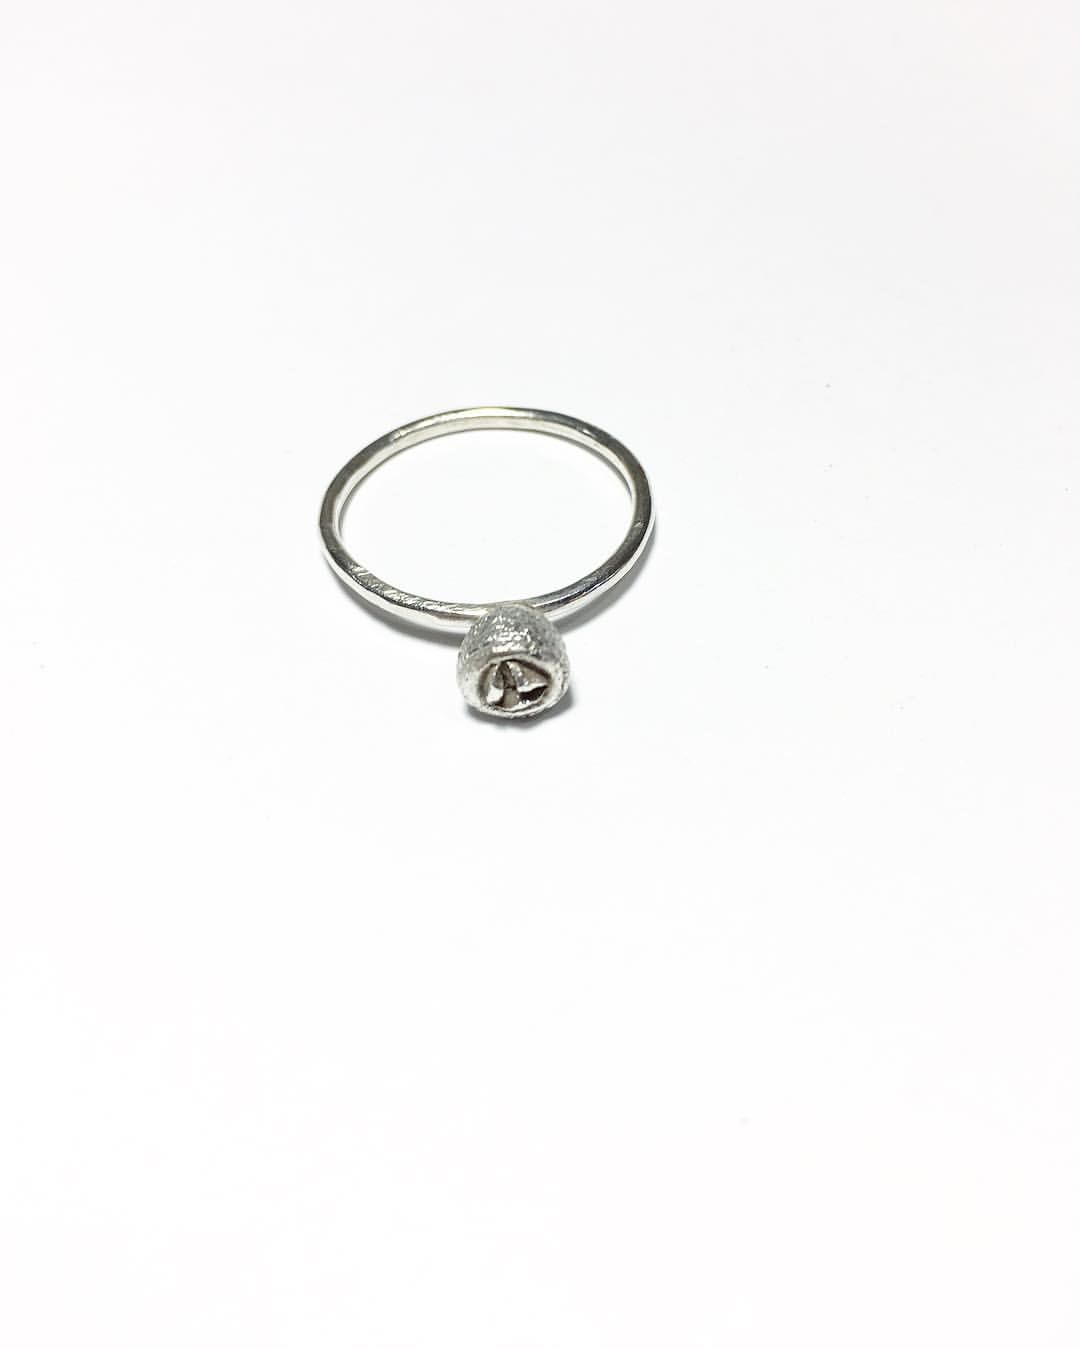 Silver Gum Nut Ring Www Katemacindoe Com Jewellery I Make